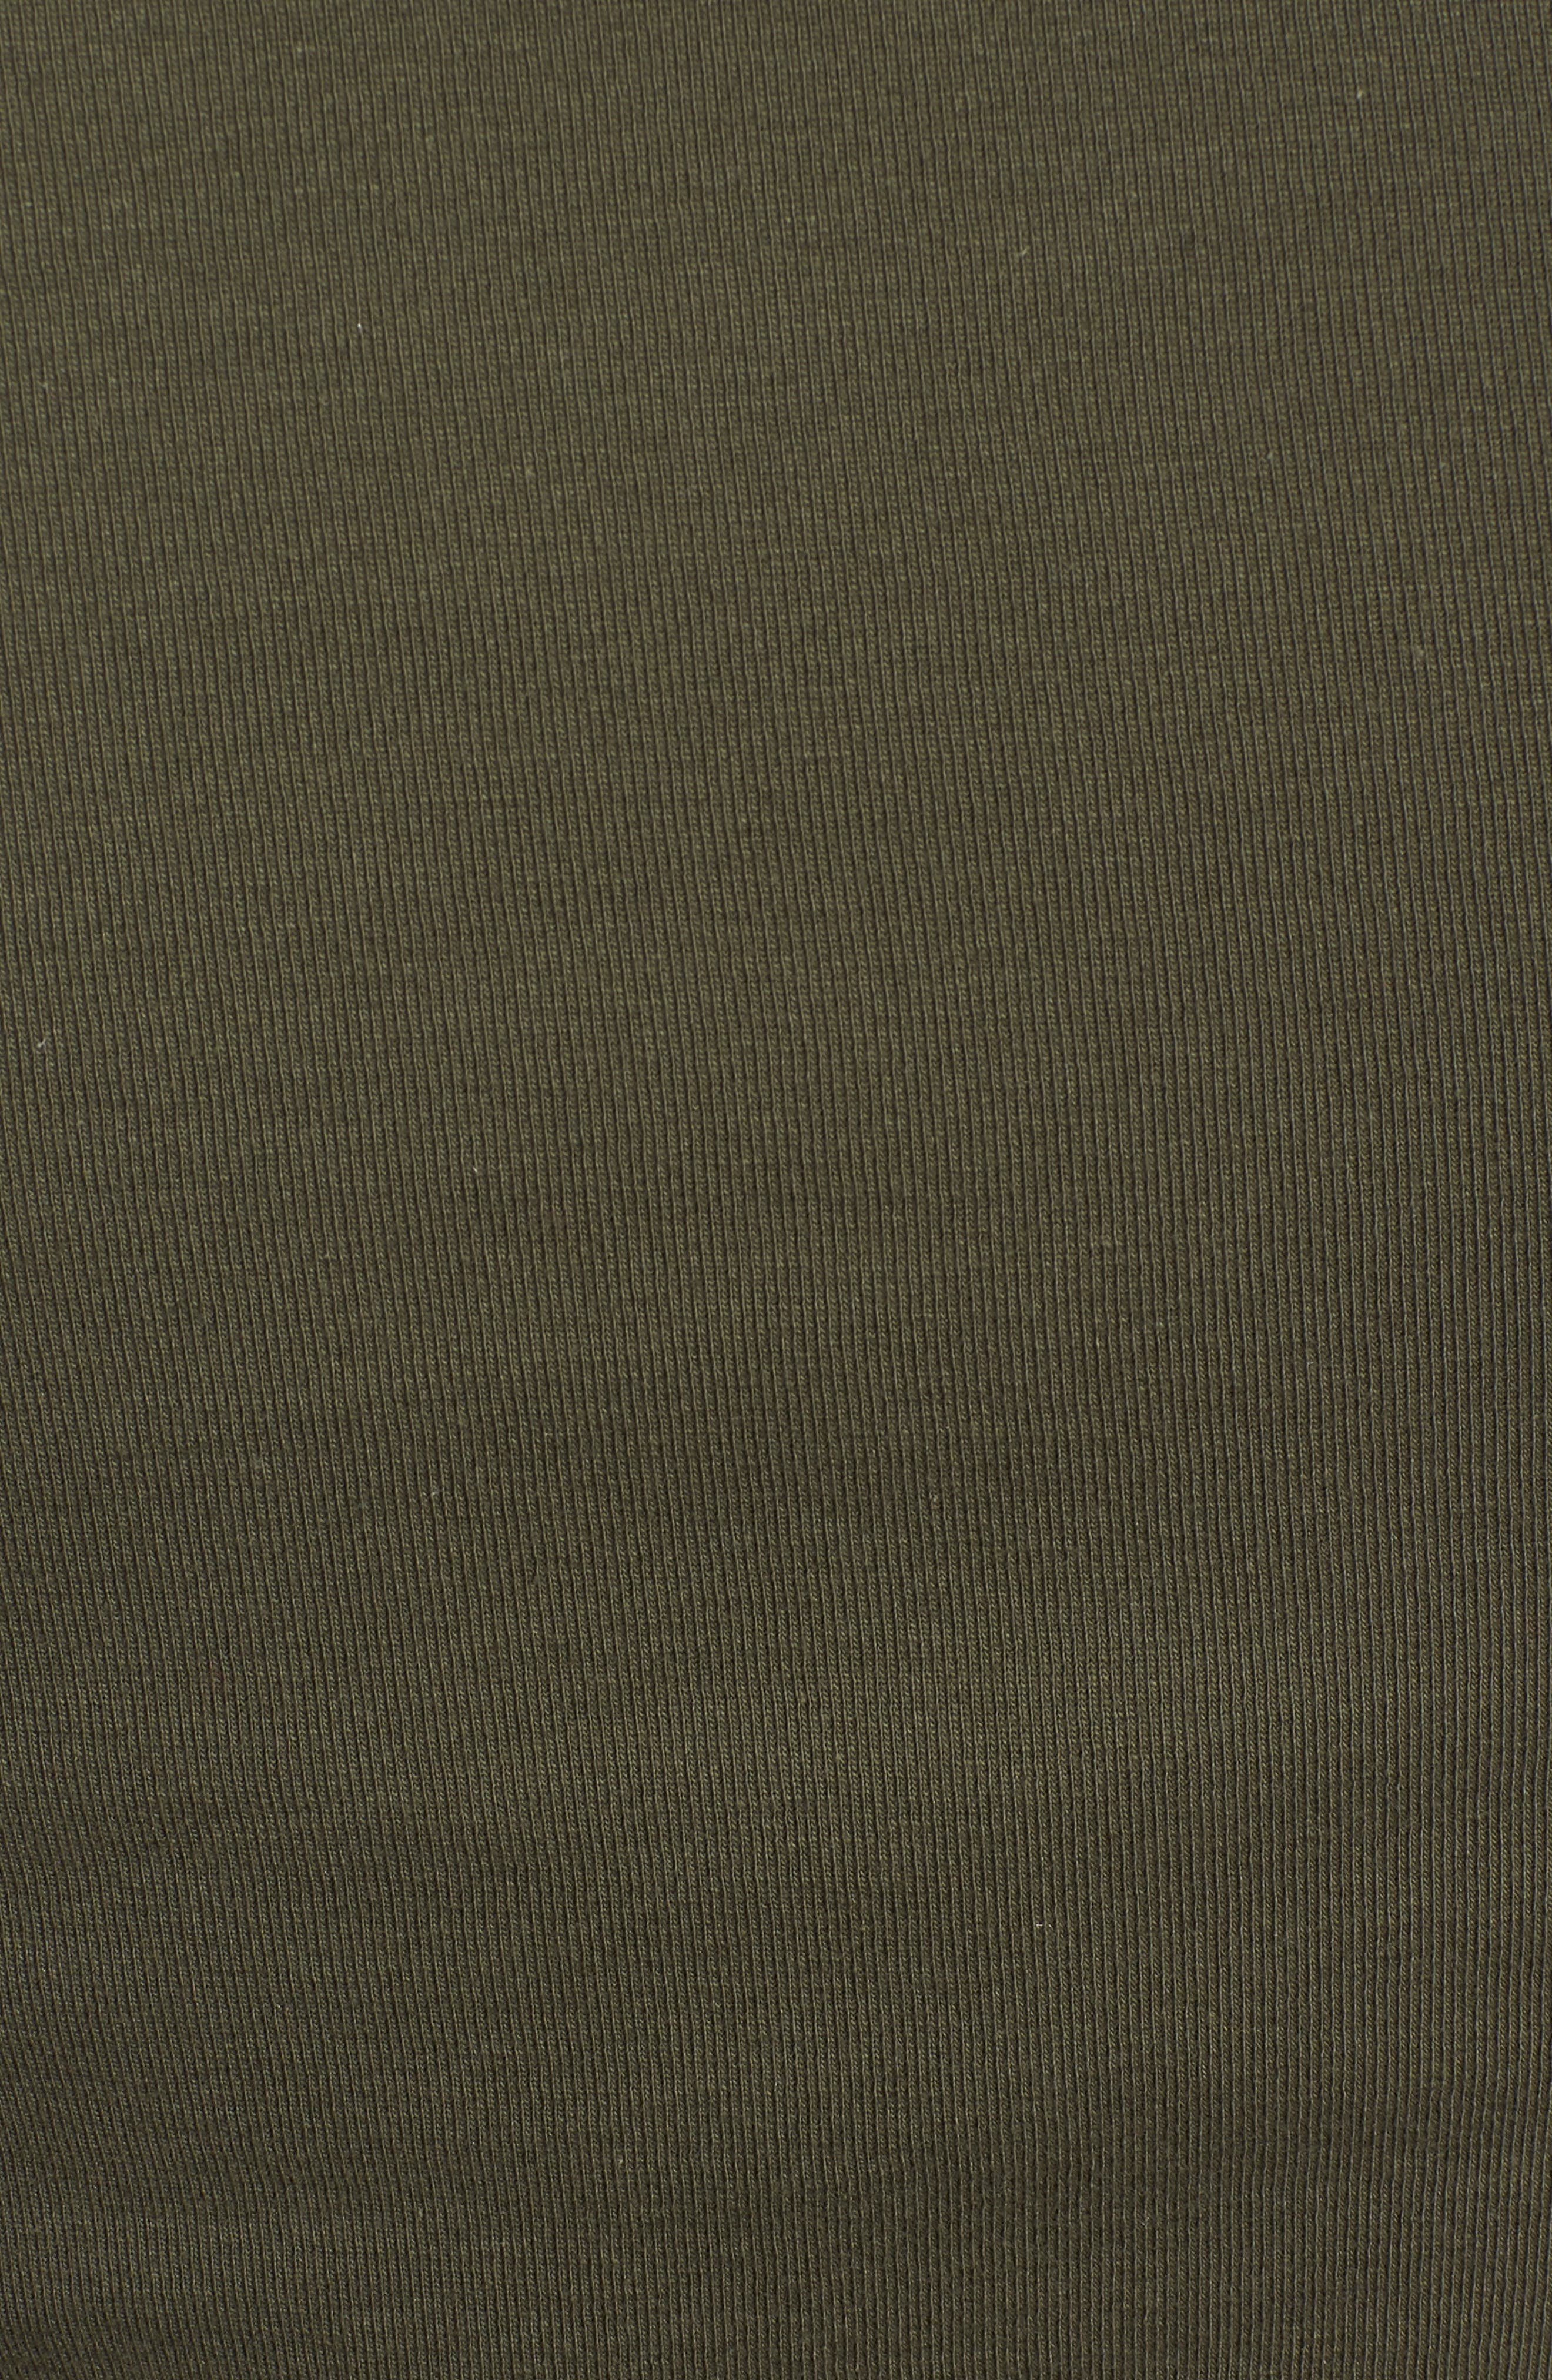 Long Sleeve Scoop Neck Cotton Tee,                             Alternate thumbnail 6, color,                             300